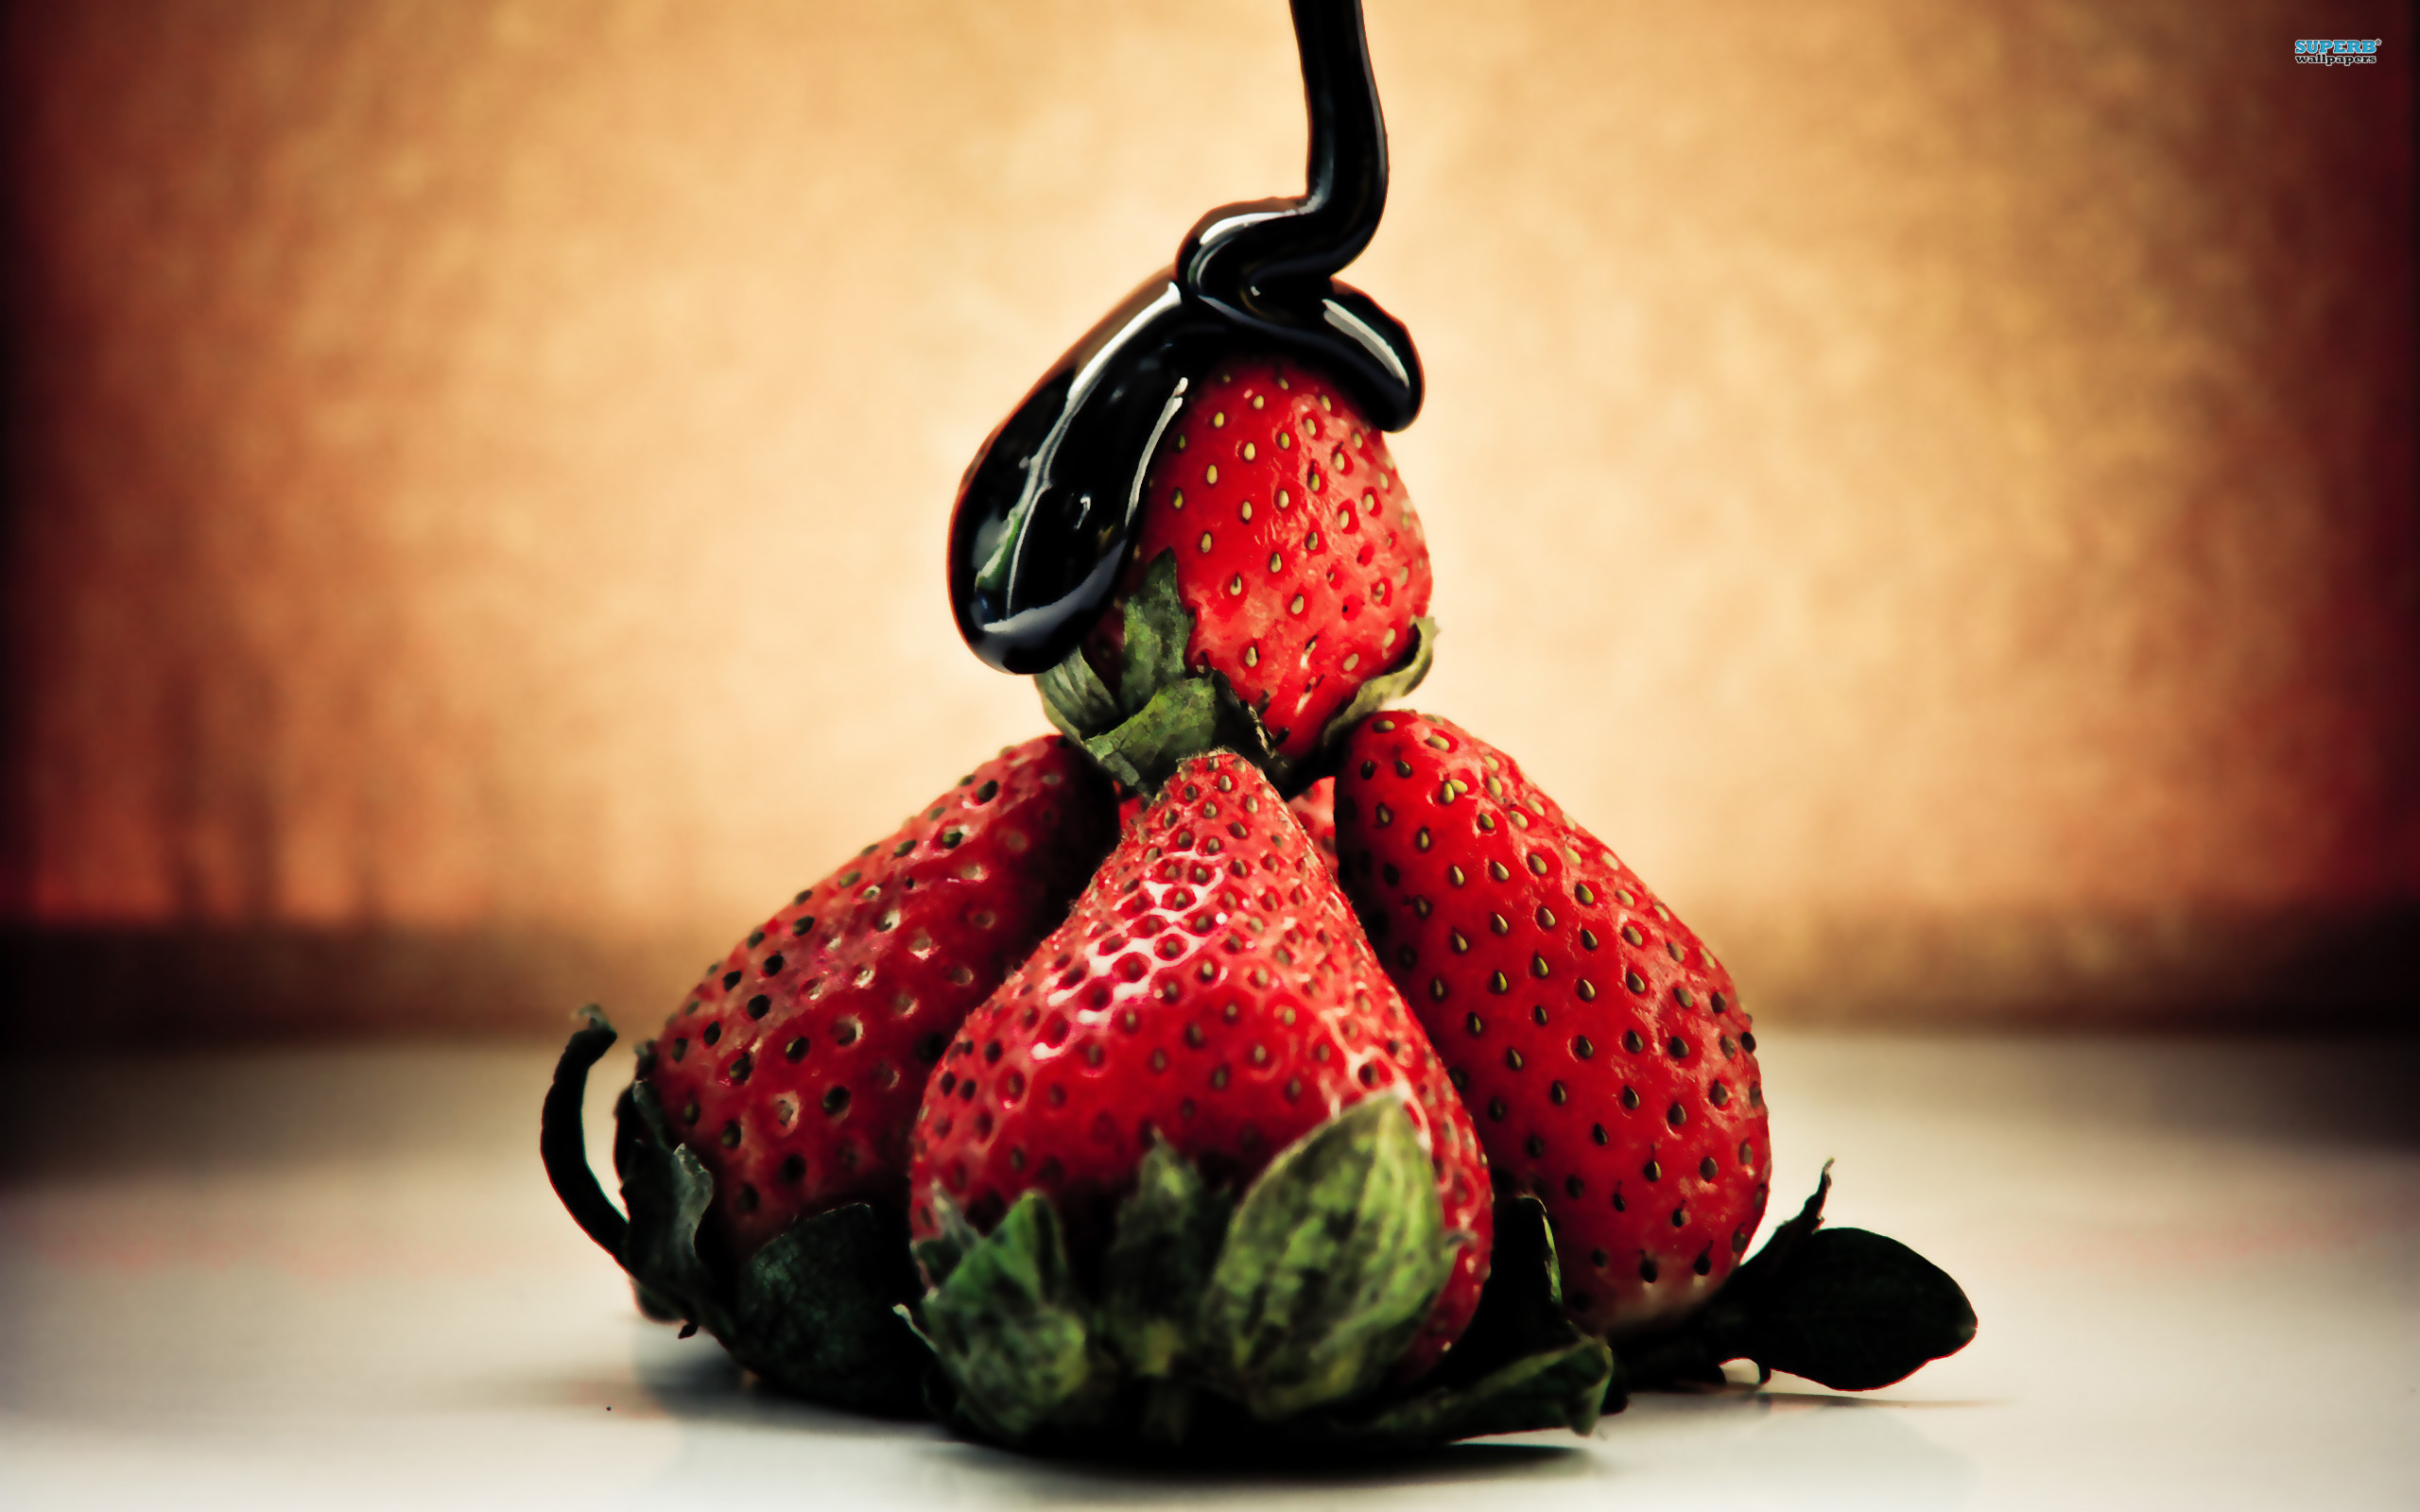 Strawberries and chocolate syrup wallpaper 2560x1600